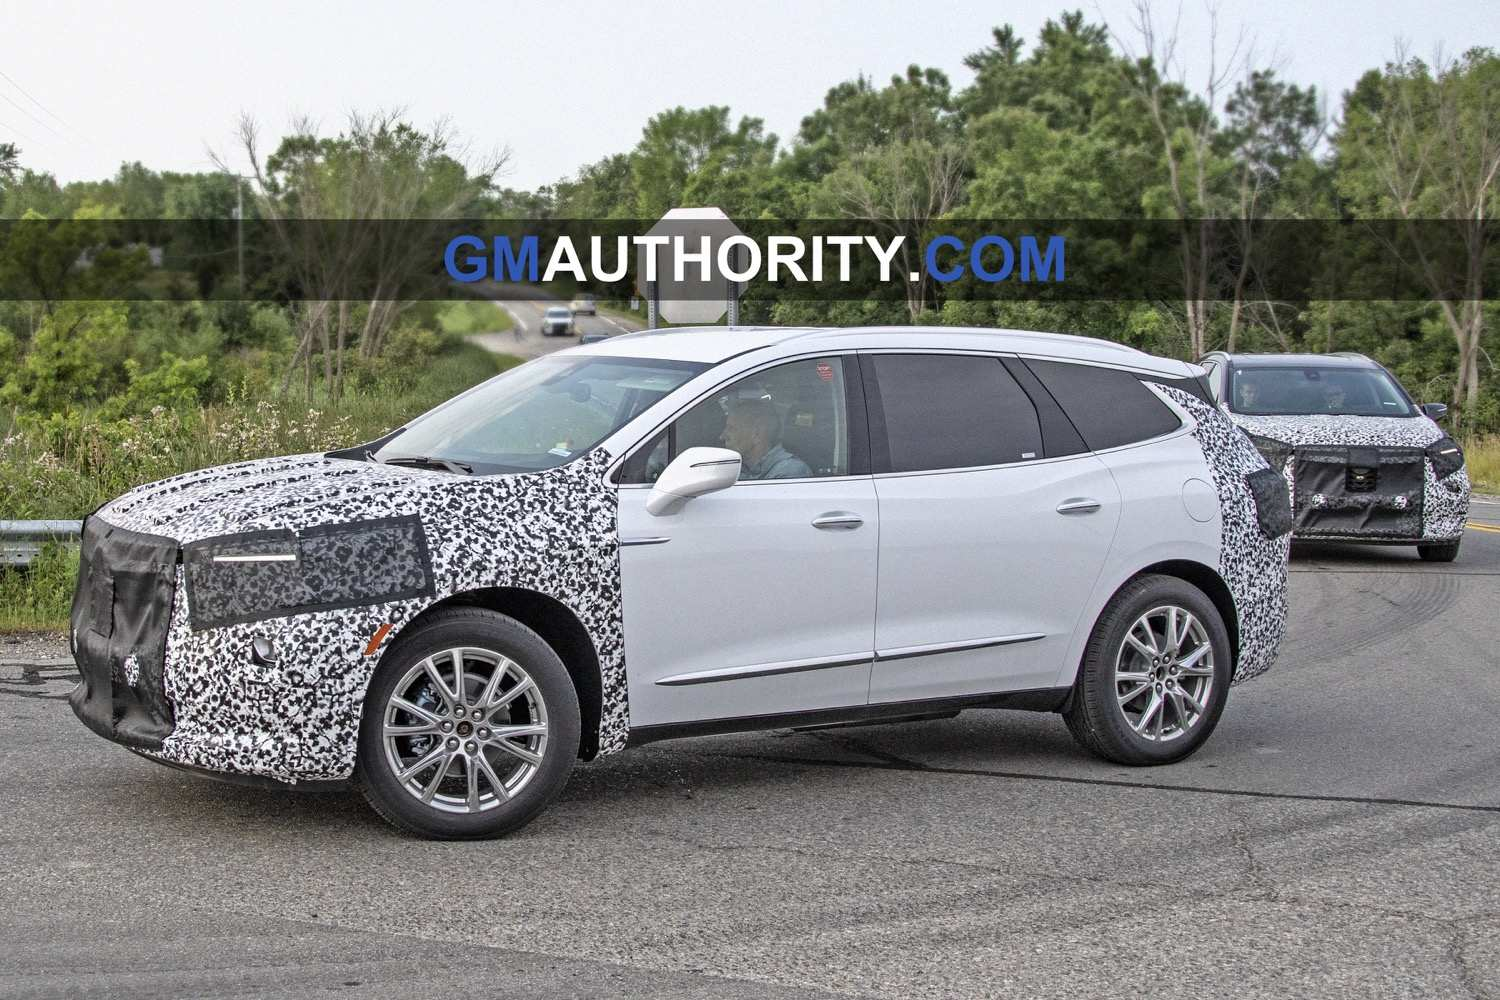 46 New 2019 Buick Enclave Spy Photos Release Date by 2019 Buick Enclave Spy Photos